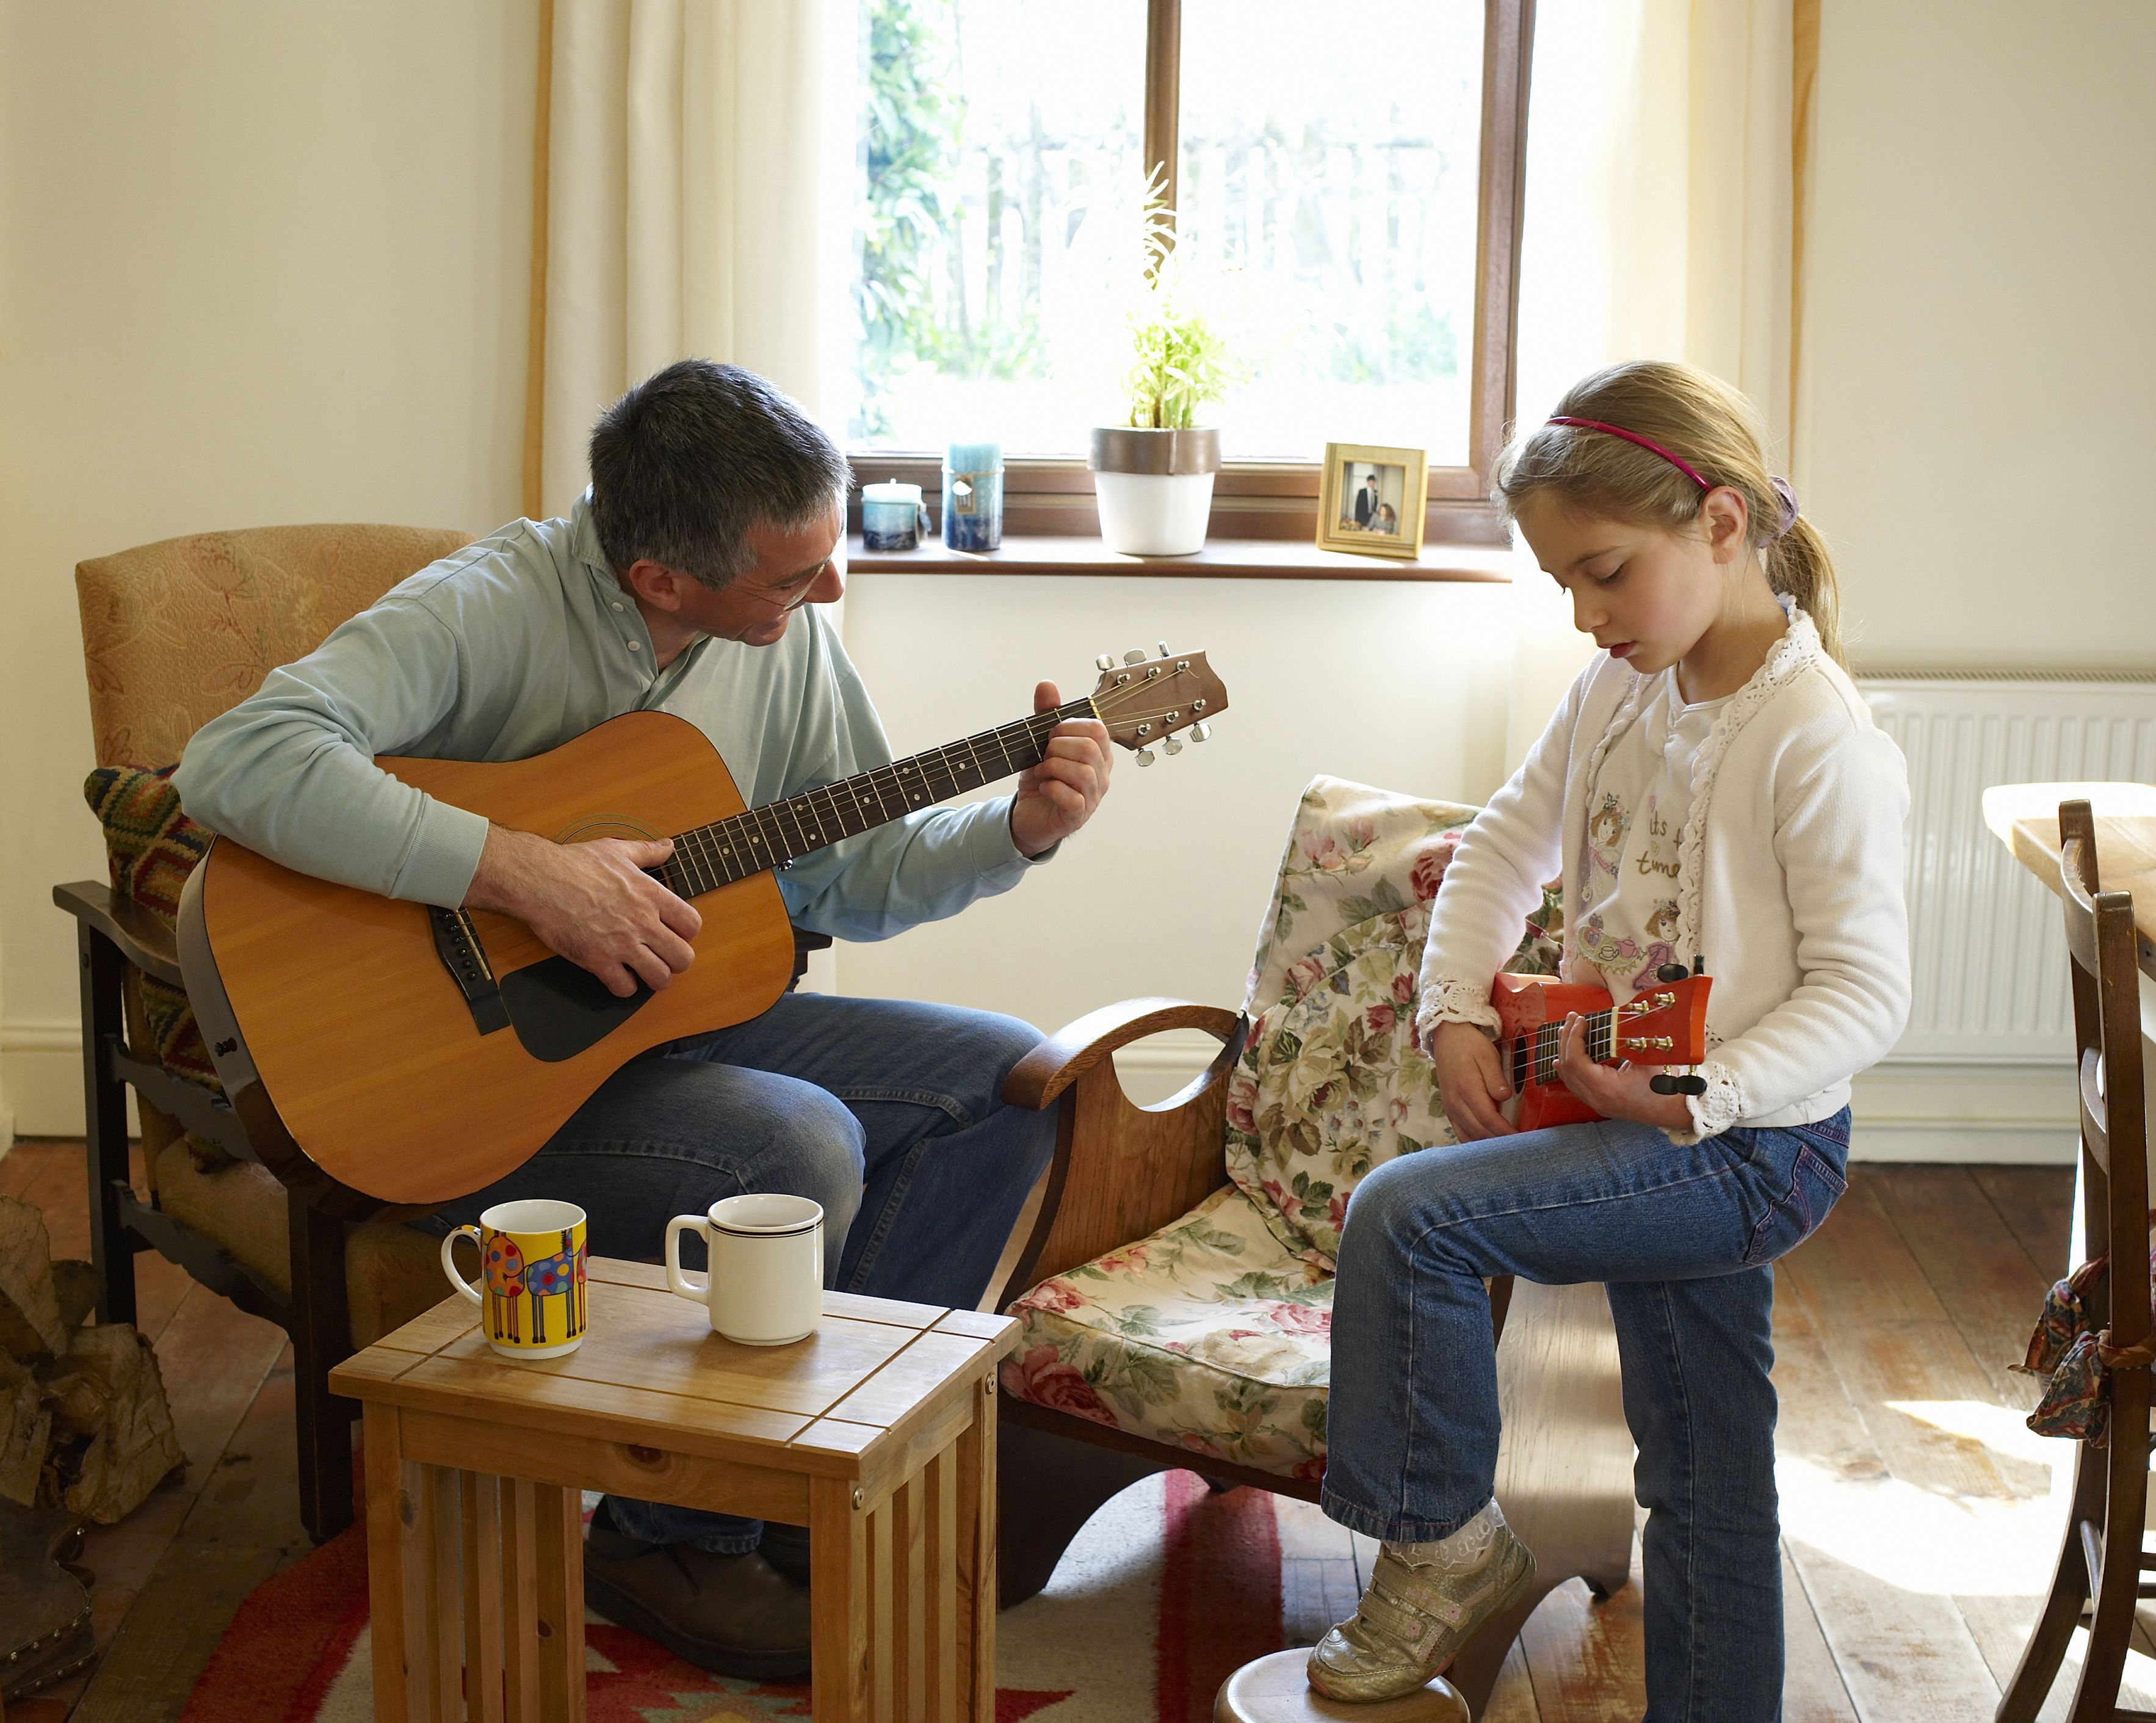 O come all ye faithful chords learn the alphabet song on guitar hexwebz Gallery